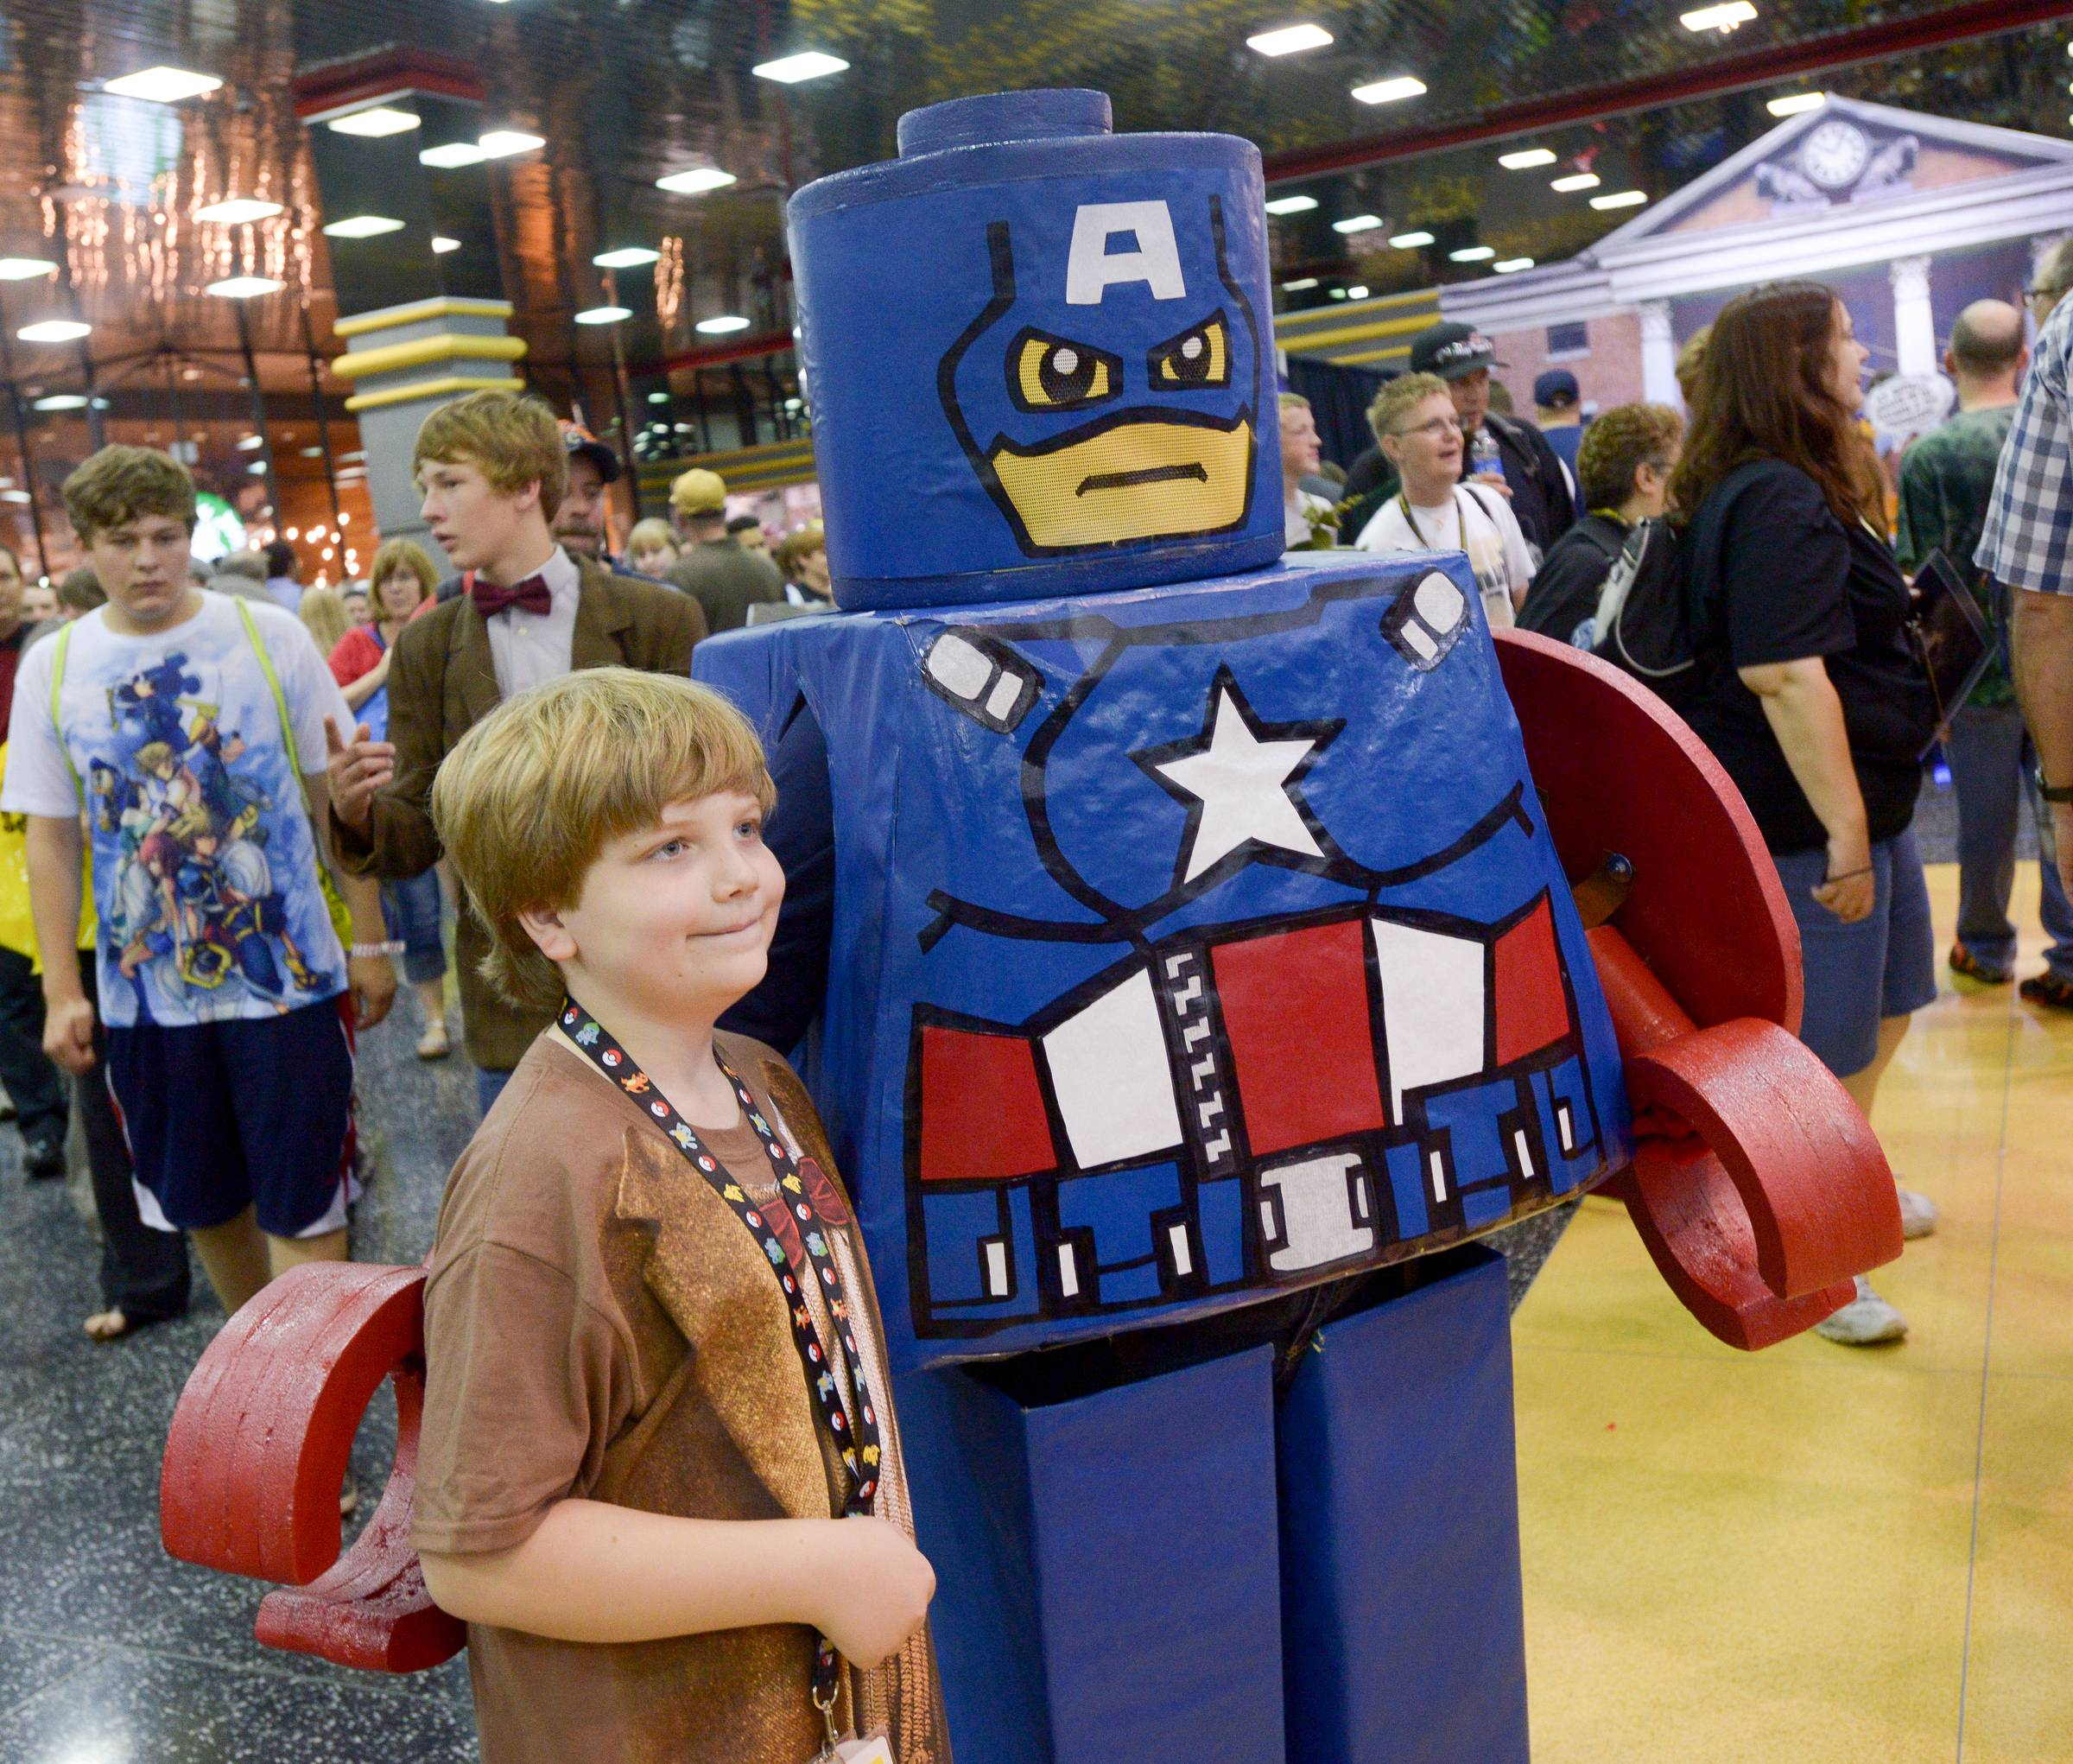 Aiden Wilbanks of Huntsville, Alabama, poses for a photo with a Lego Captain America while visiting the Comic Con convention at the Donald E. Stephens Convention Center in Rosemont.